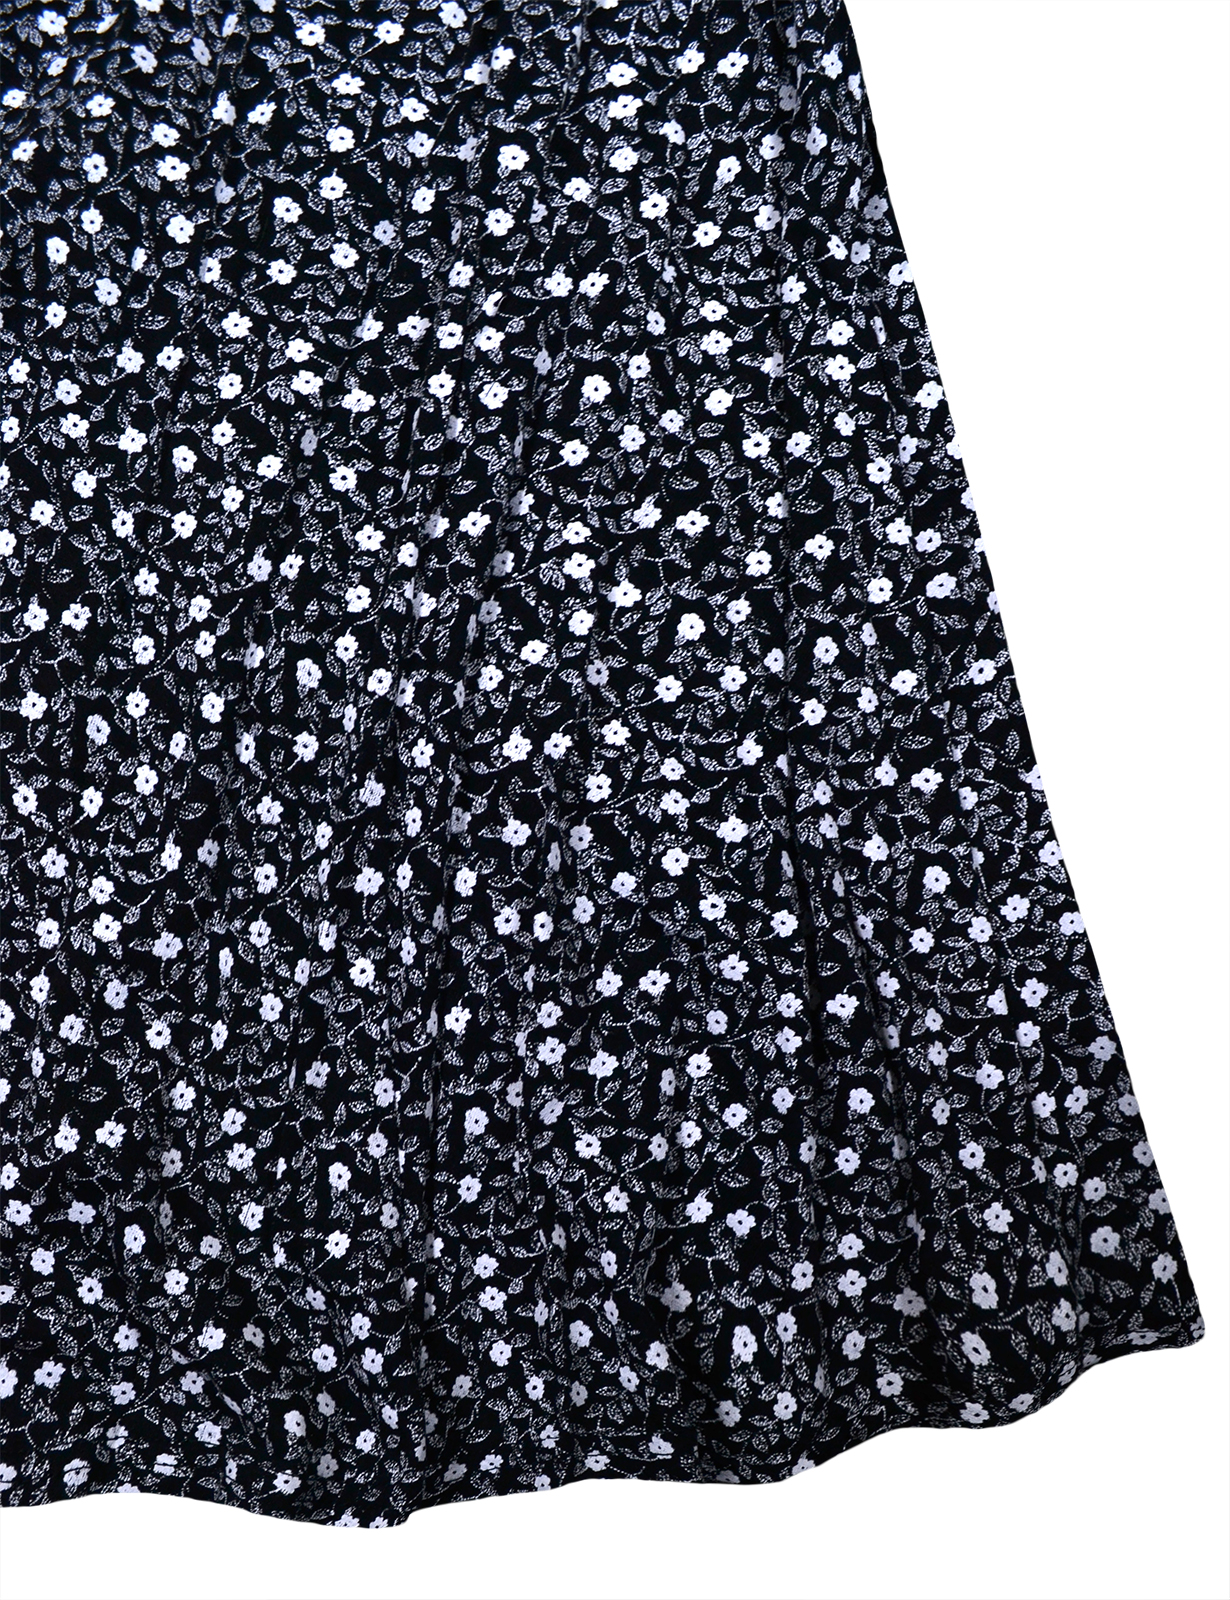 Girls-New-Ditsy-Floral-Skater-Dress-Kids-Party-Black-Dresses-7-8-9-10-11-12-13-Y thumbnail 12